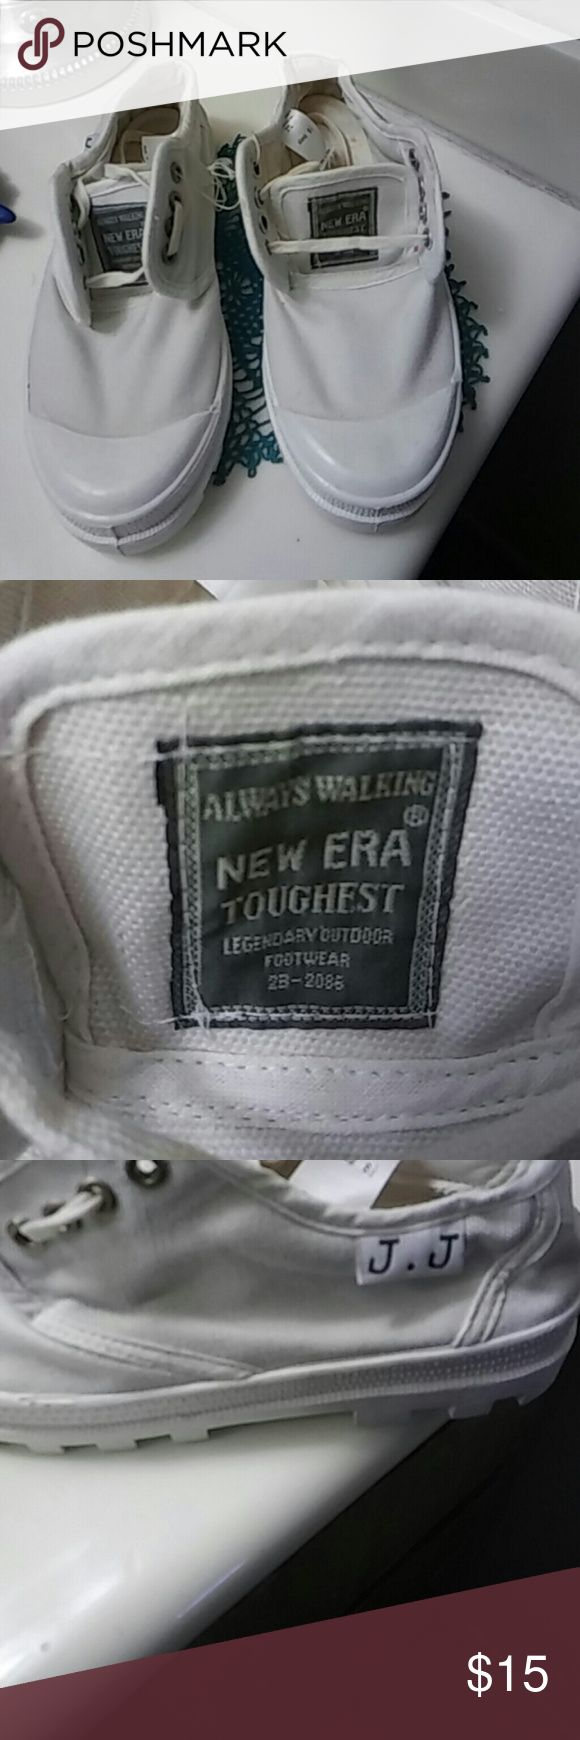 New Era Toughest footwear Legendary outdoor footwear tennis shoes.  Clean and a lil worn inside but no rips.  Size 8-1/2. Shoestrings came out yellow on camera.  They r white New Era Shoes Athletic Shoes